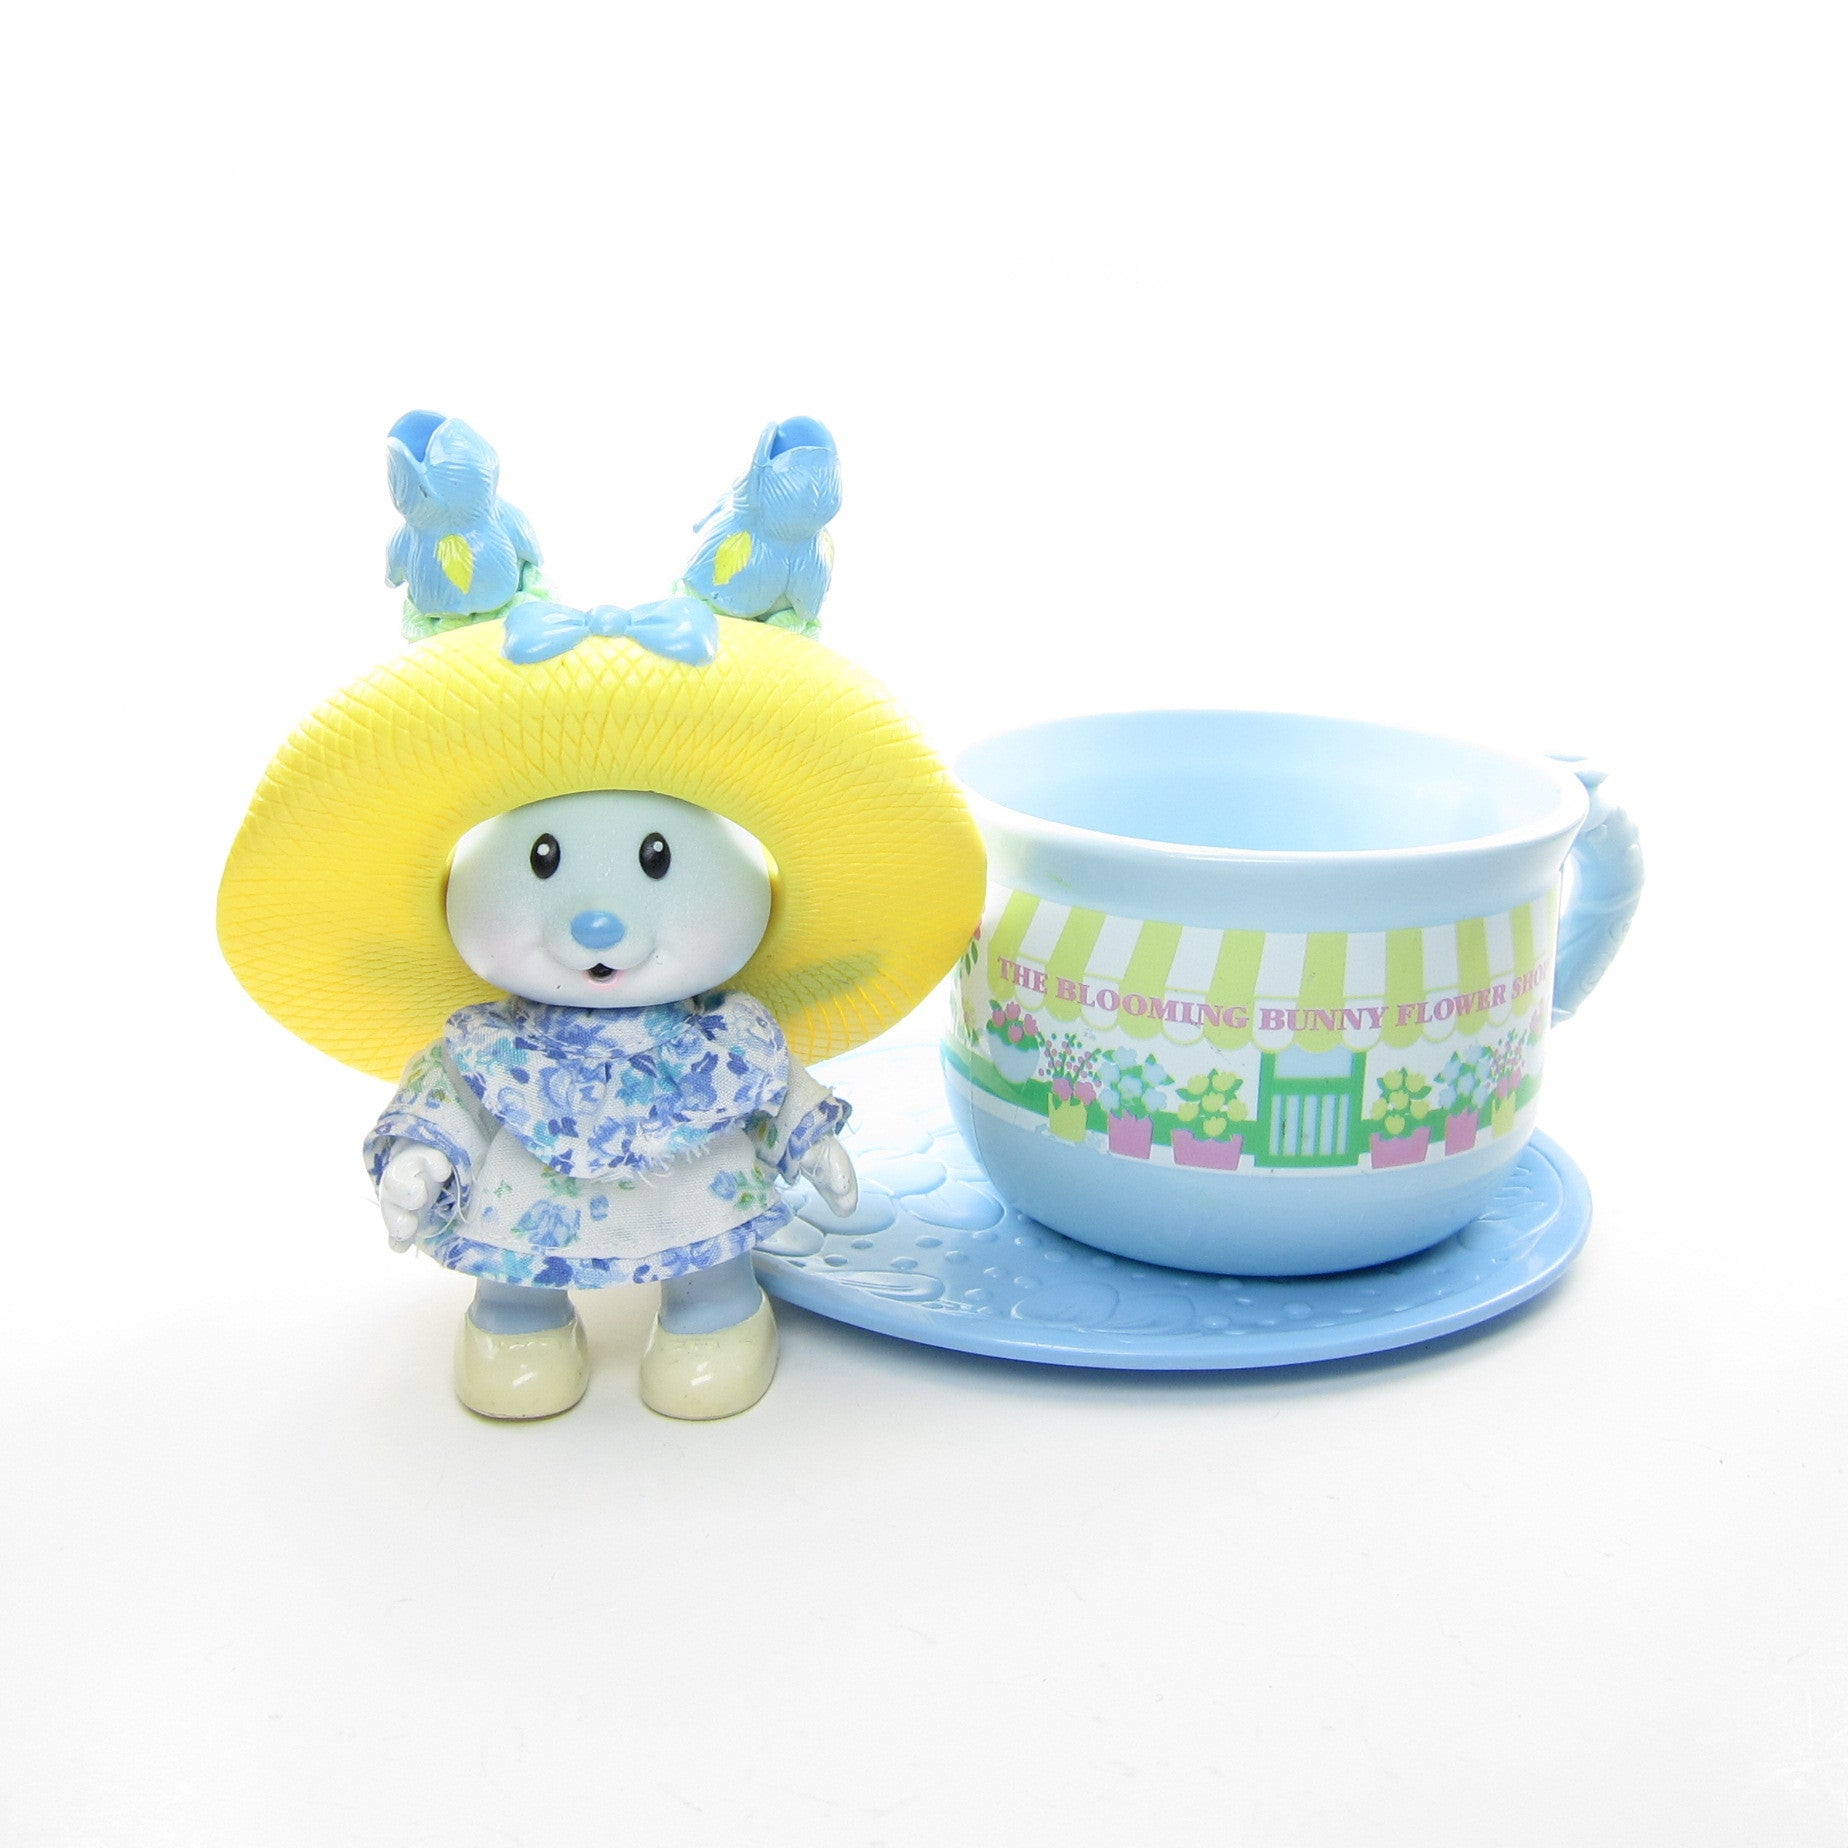 Iris Bouquet and the Blooming Bunny Flower Shop Tea Bunnies toy